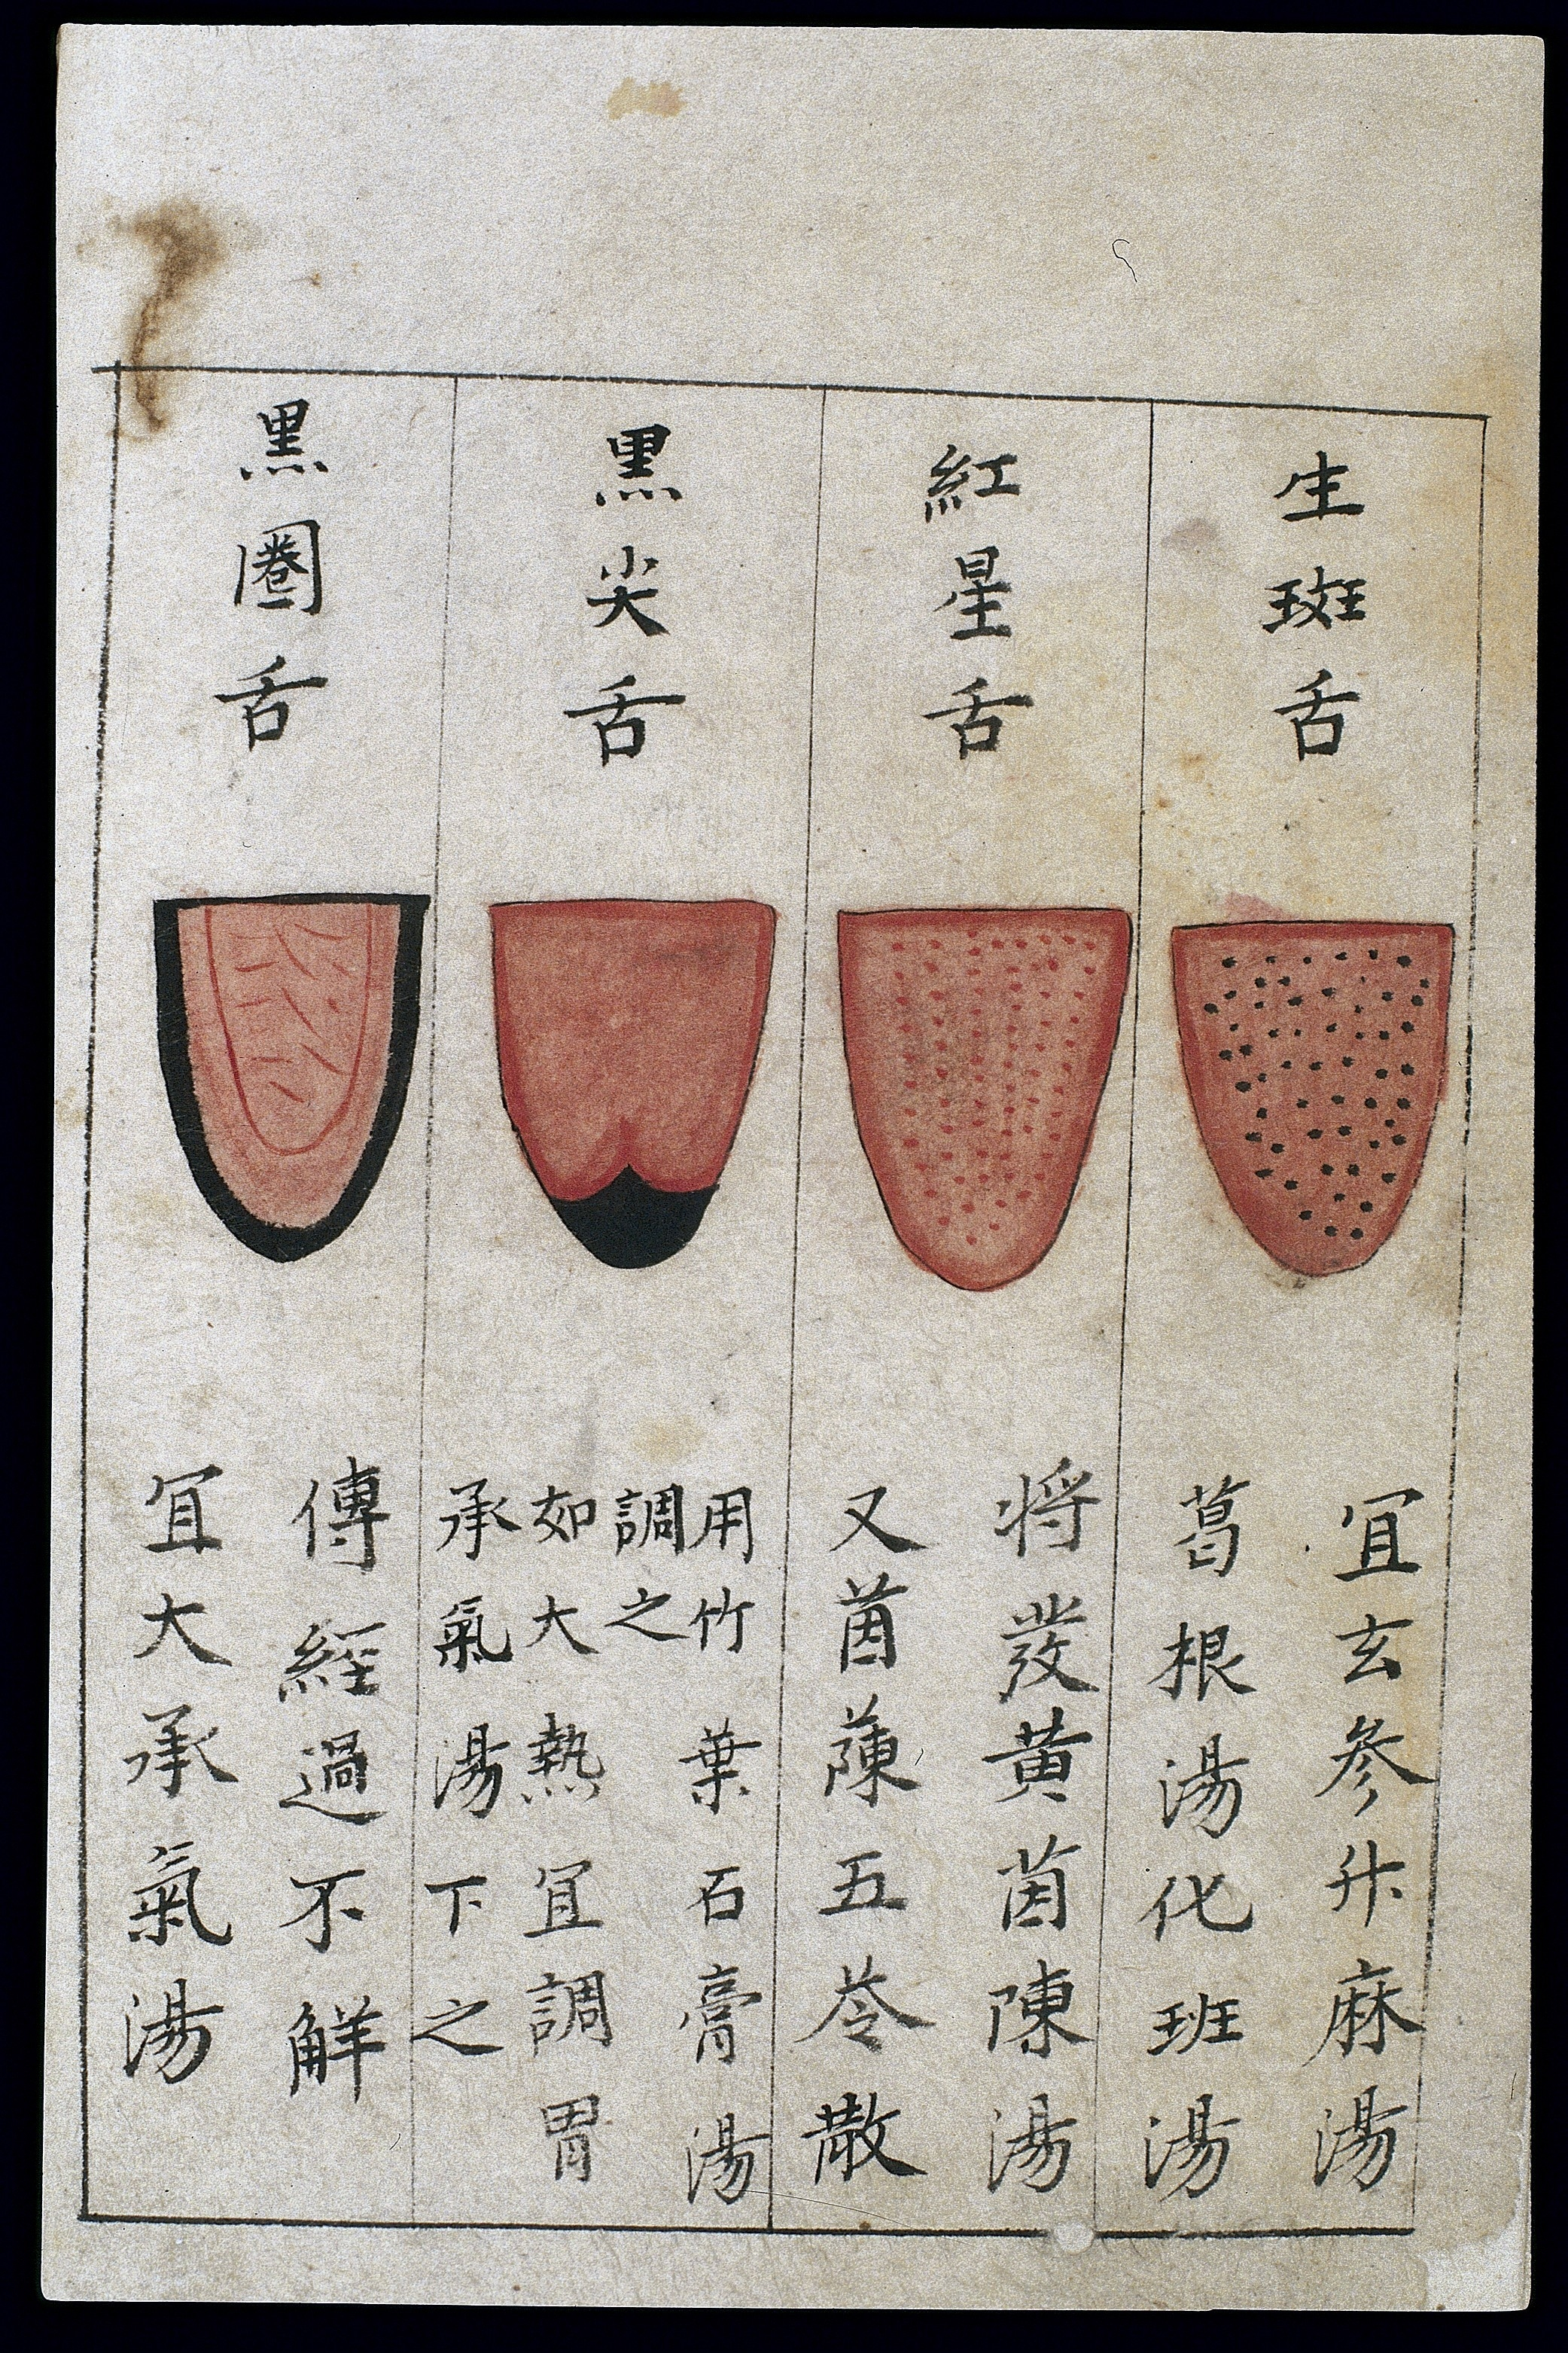 Body Type Chart: C14 Chinese tongue diagnosis chart Wellcome L0039595.jpg ,Chart